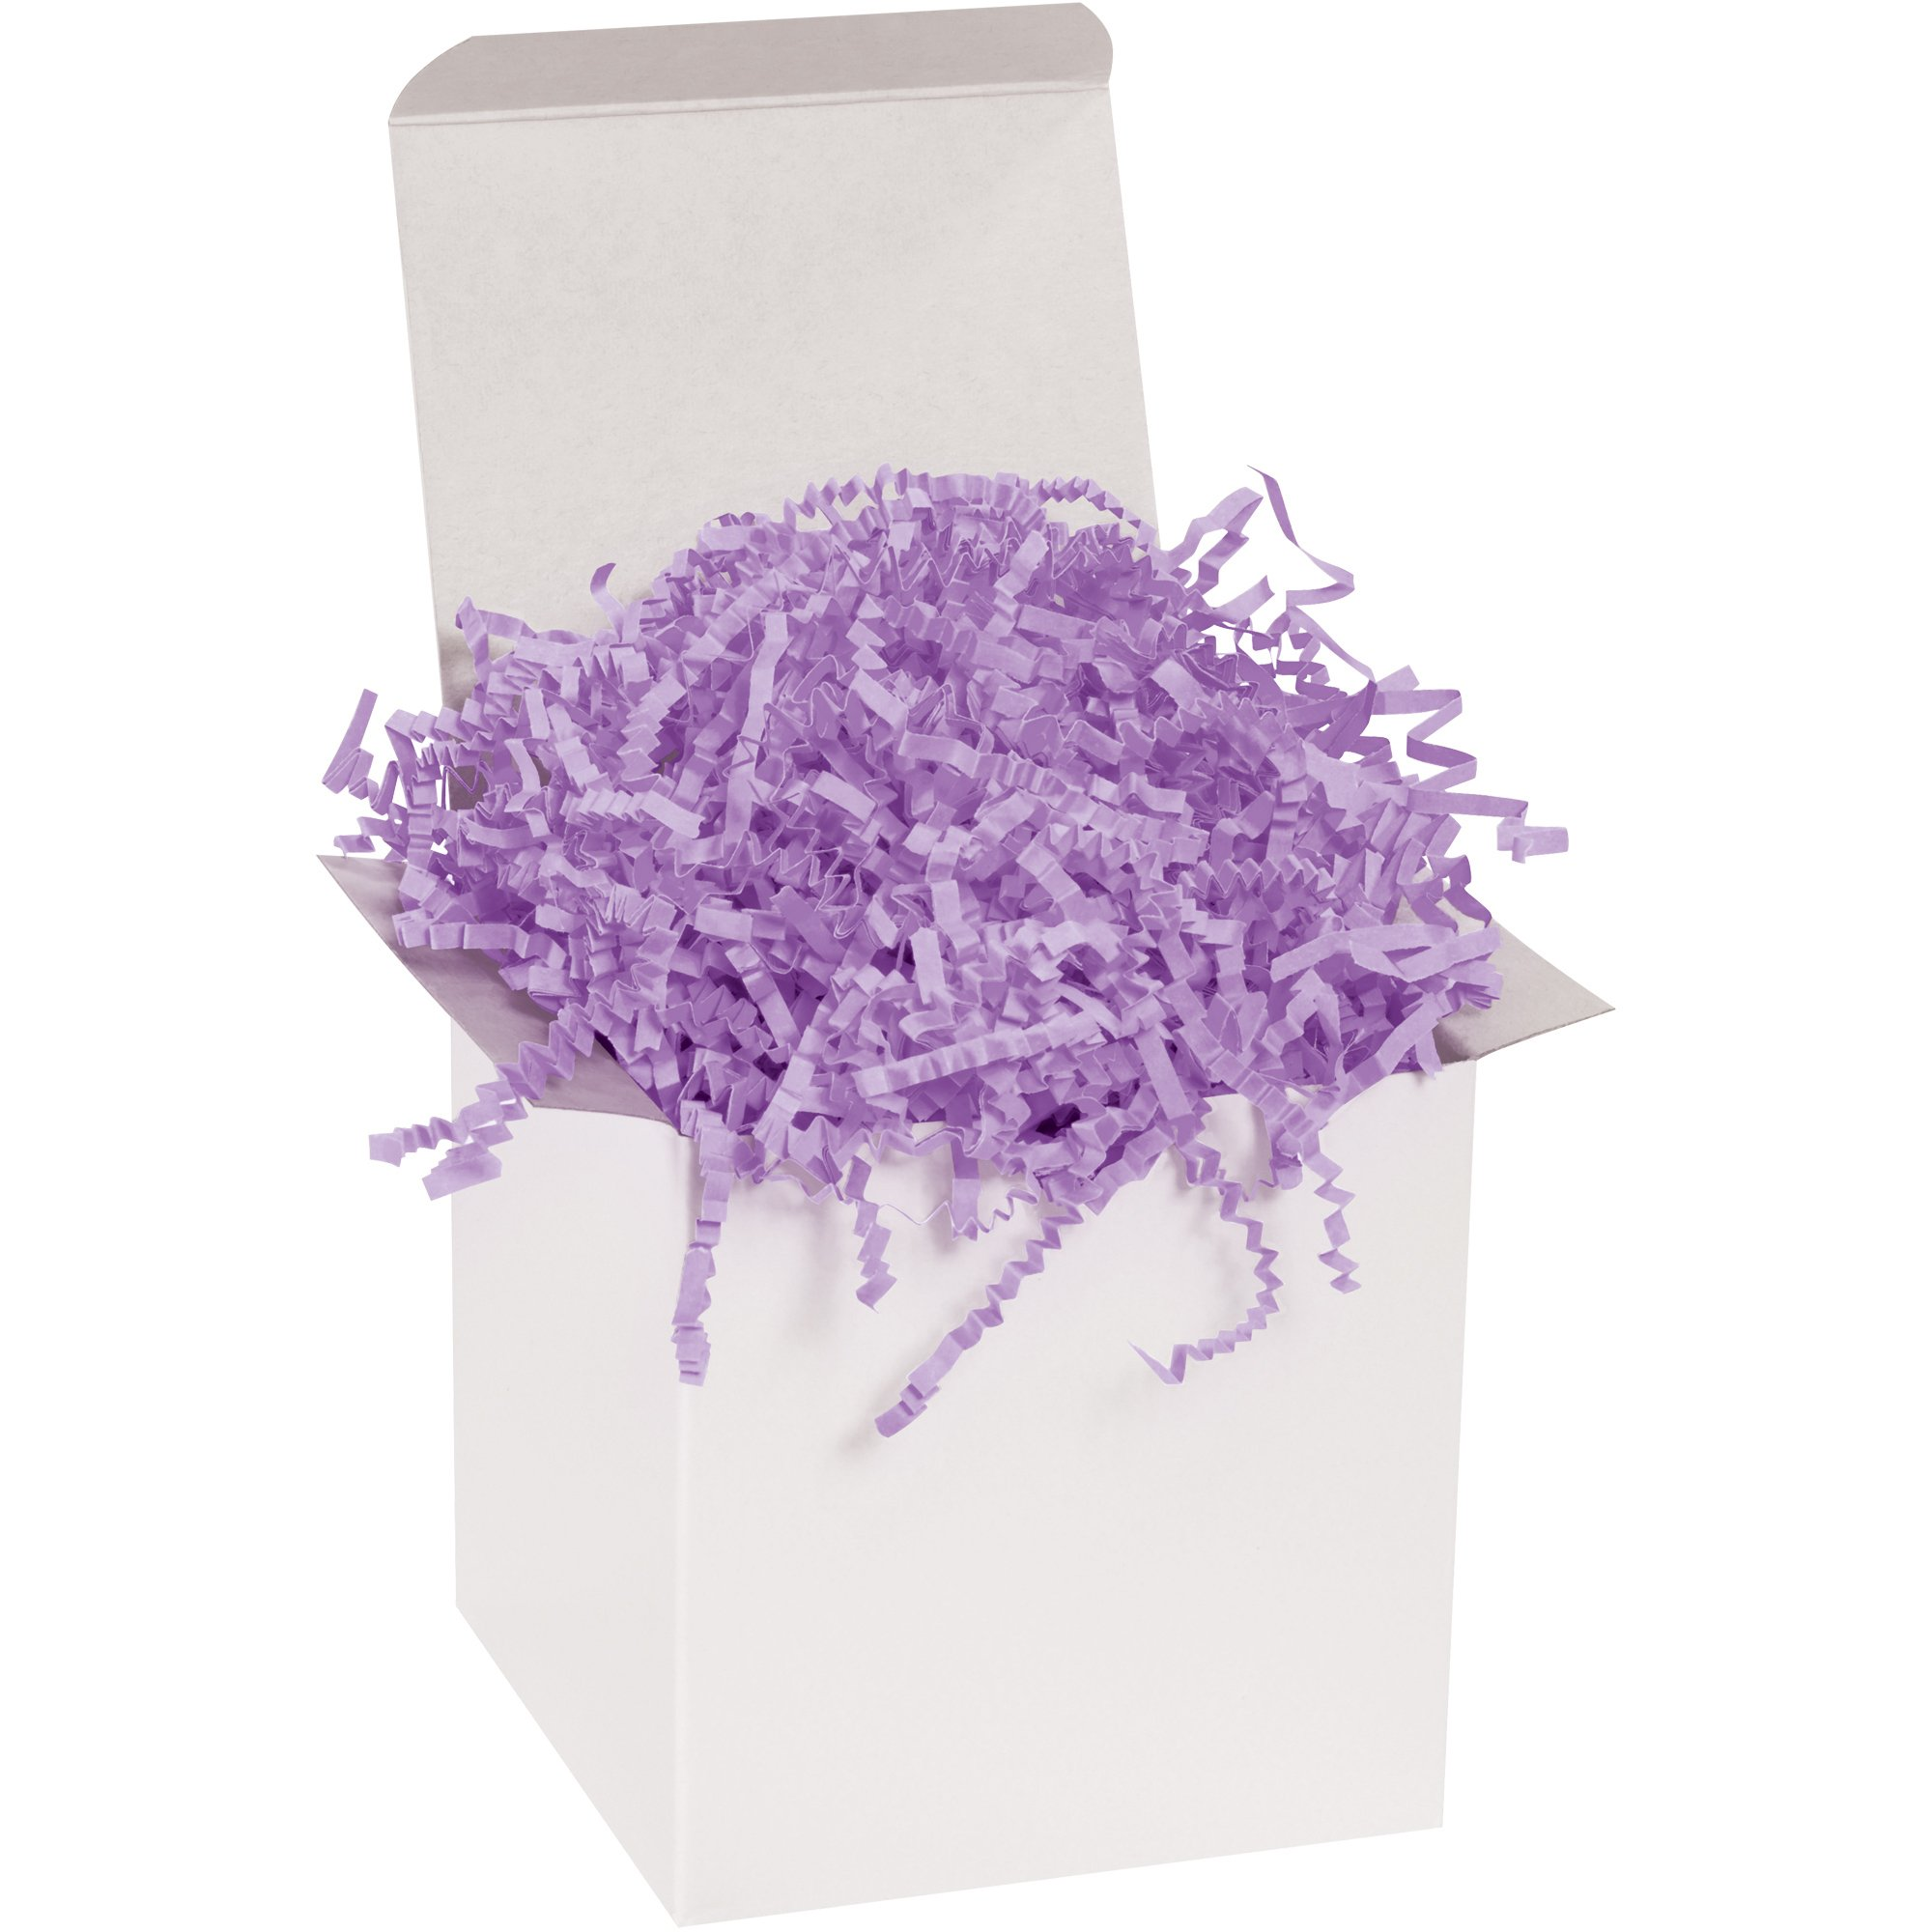 Crinkle Paper, 10 lb, Lavender, 1/Case by Choice Shipping Supplies